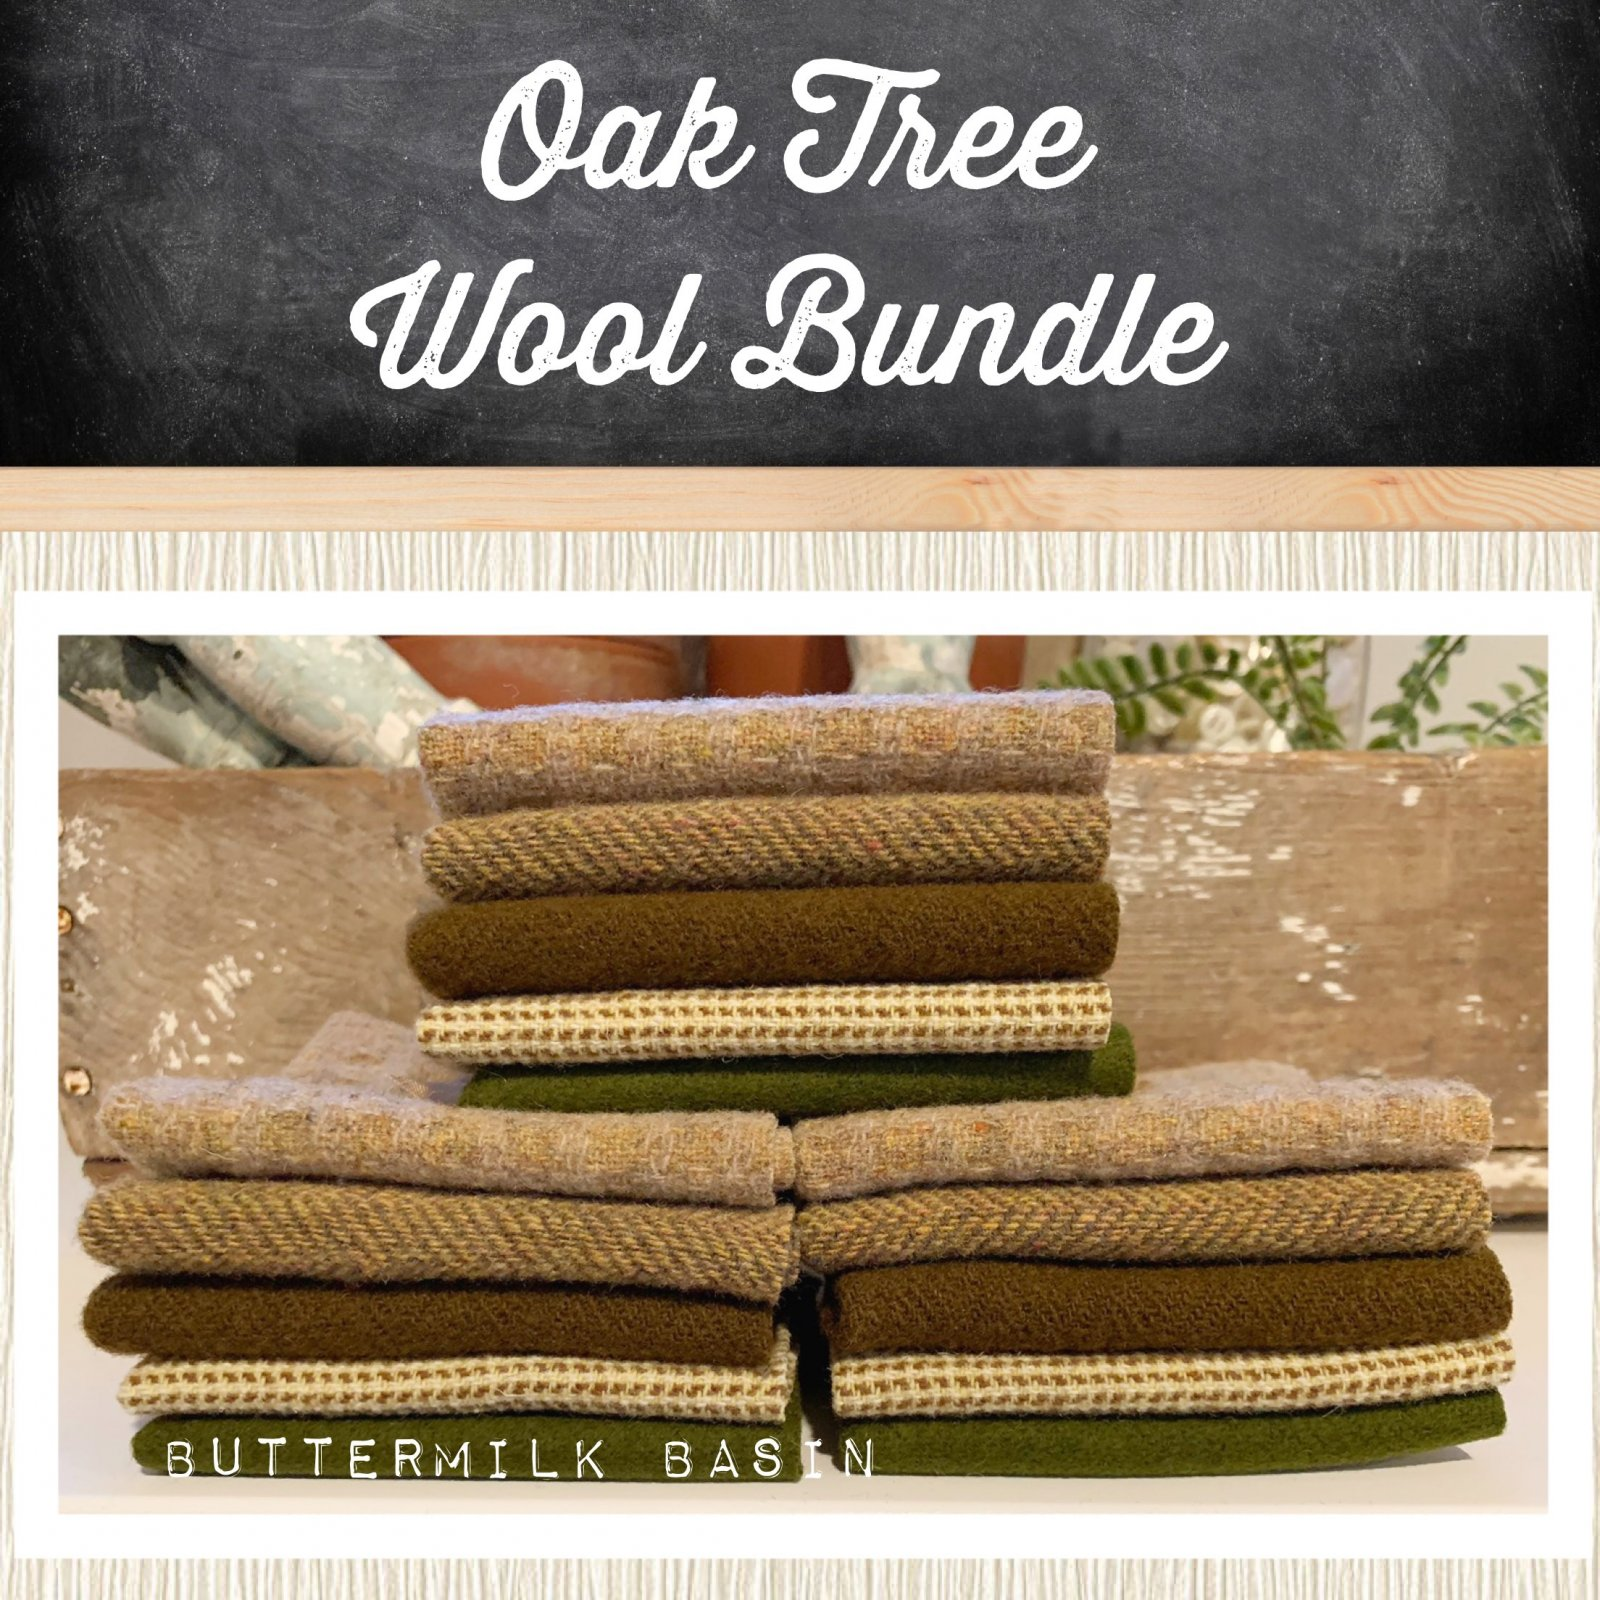 Oak Tree Wool Bundle